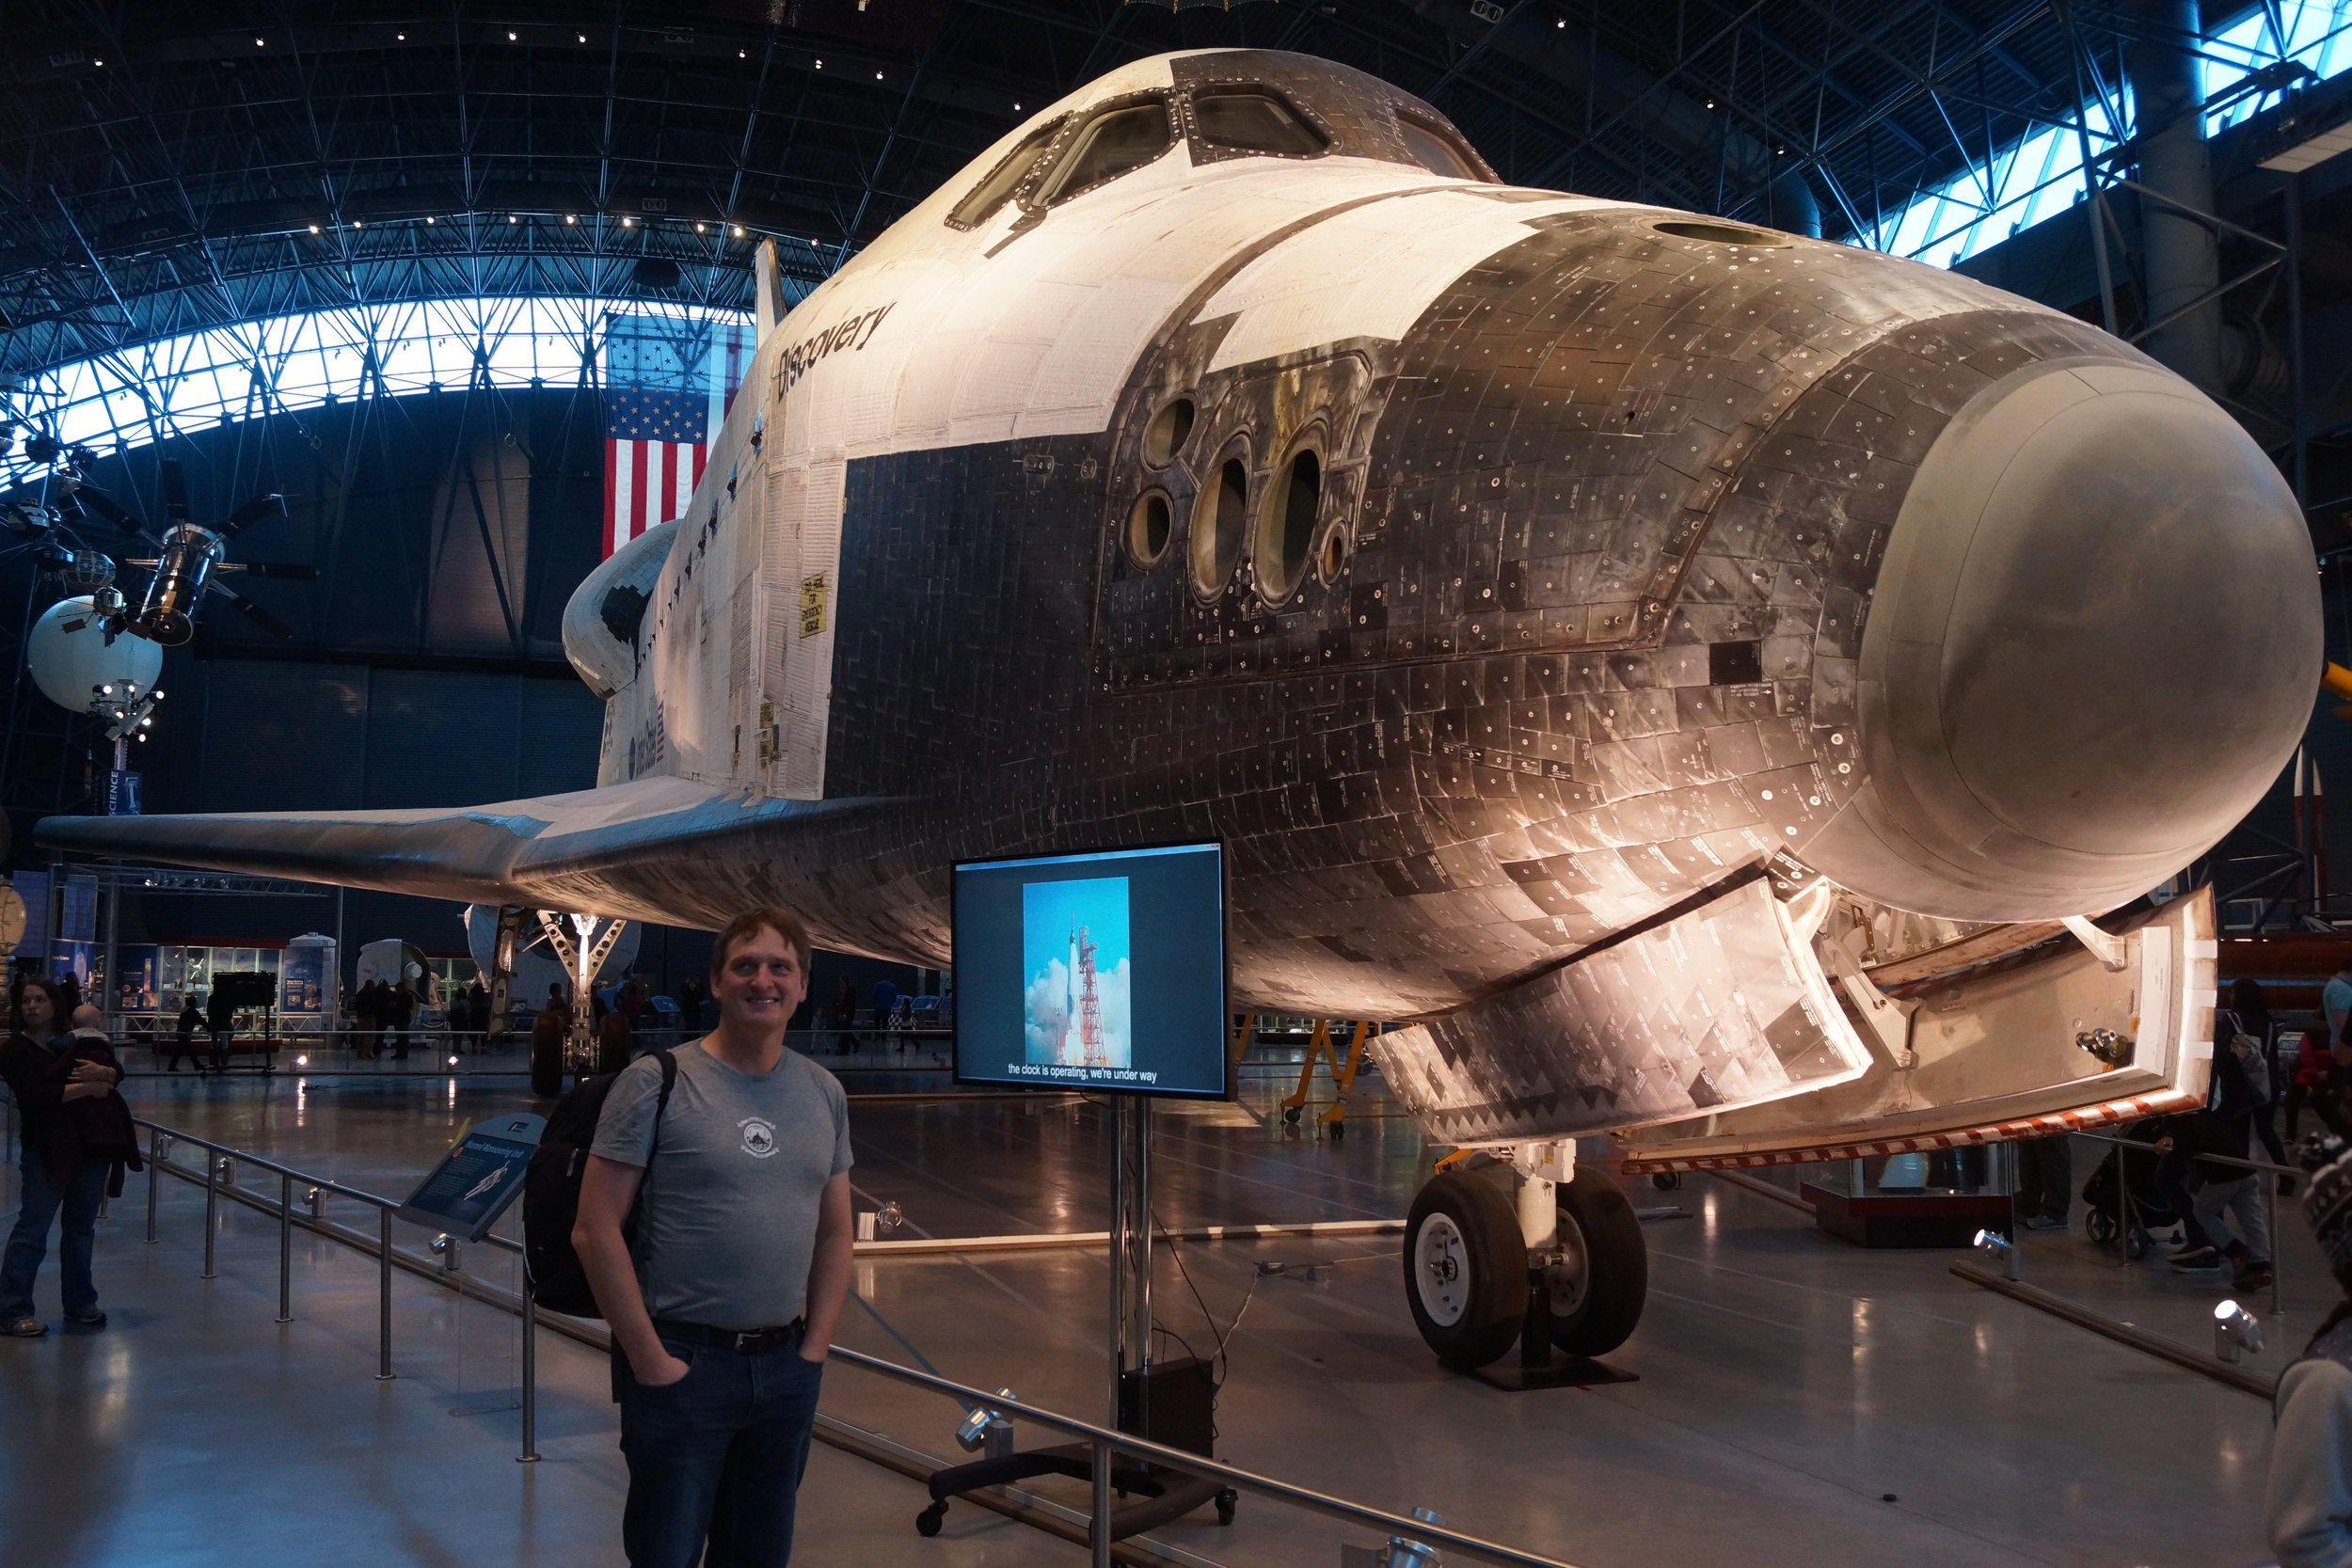 The Space Shuttle, now a museum piece.